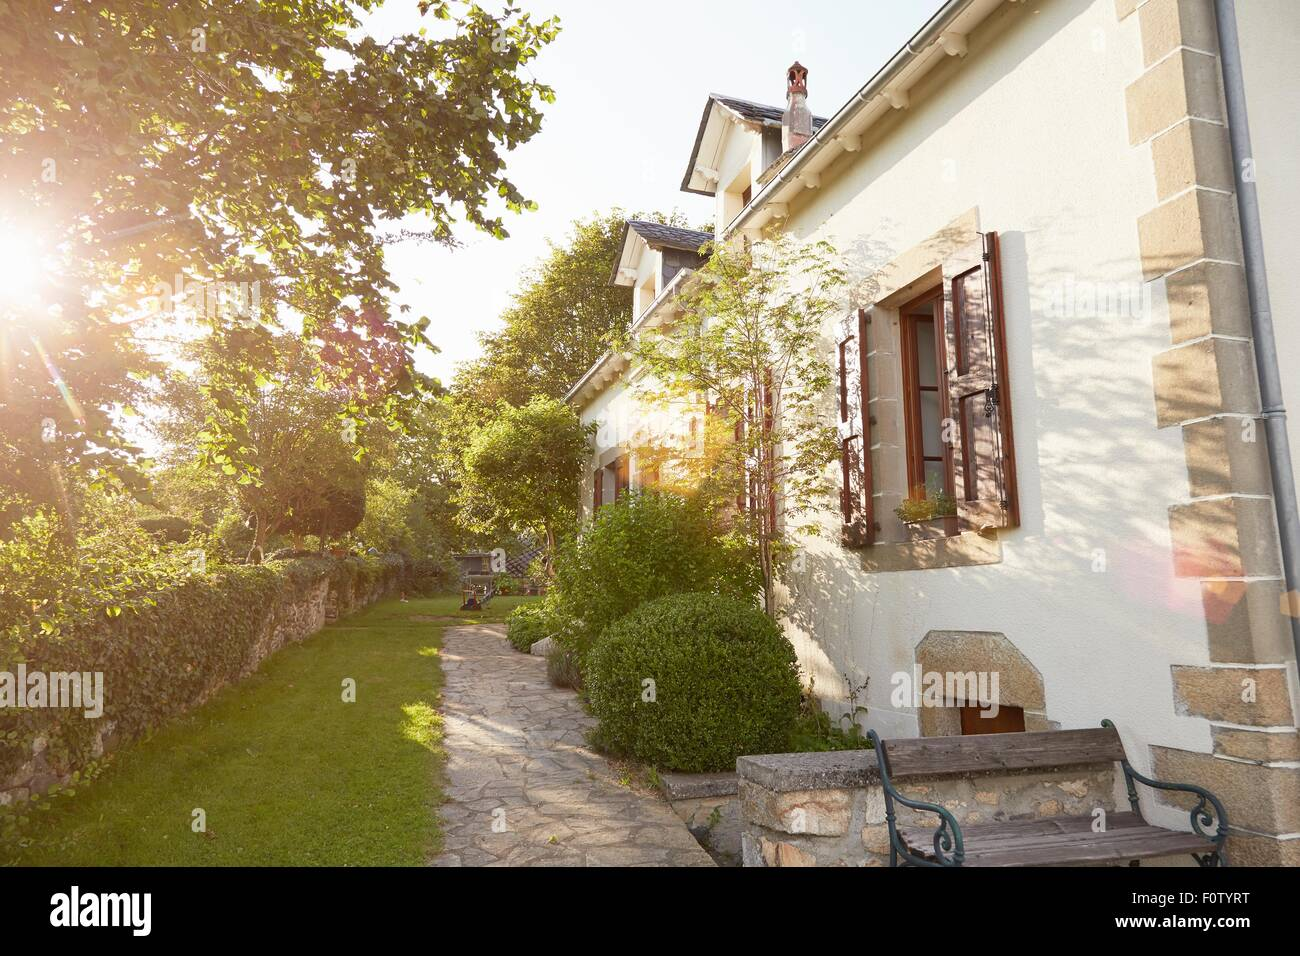 Rural cottage and garden in sunlight - Stock Image